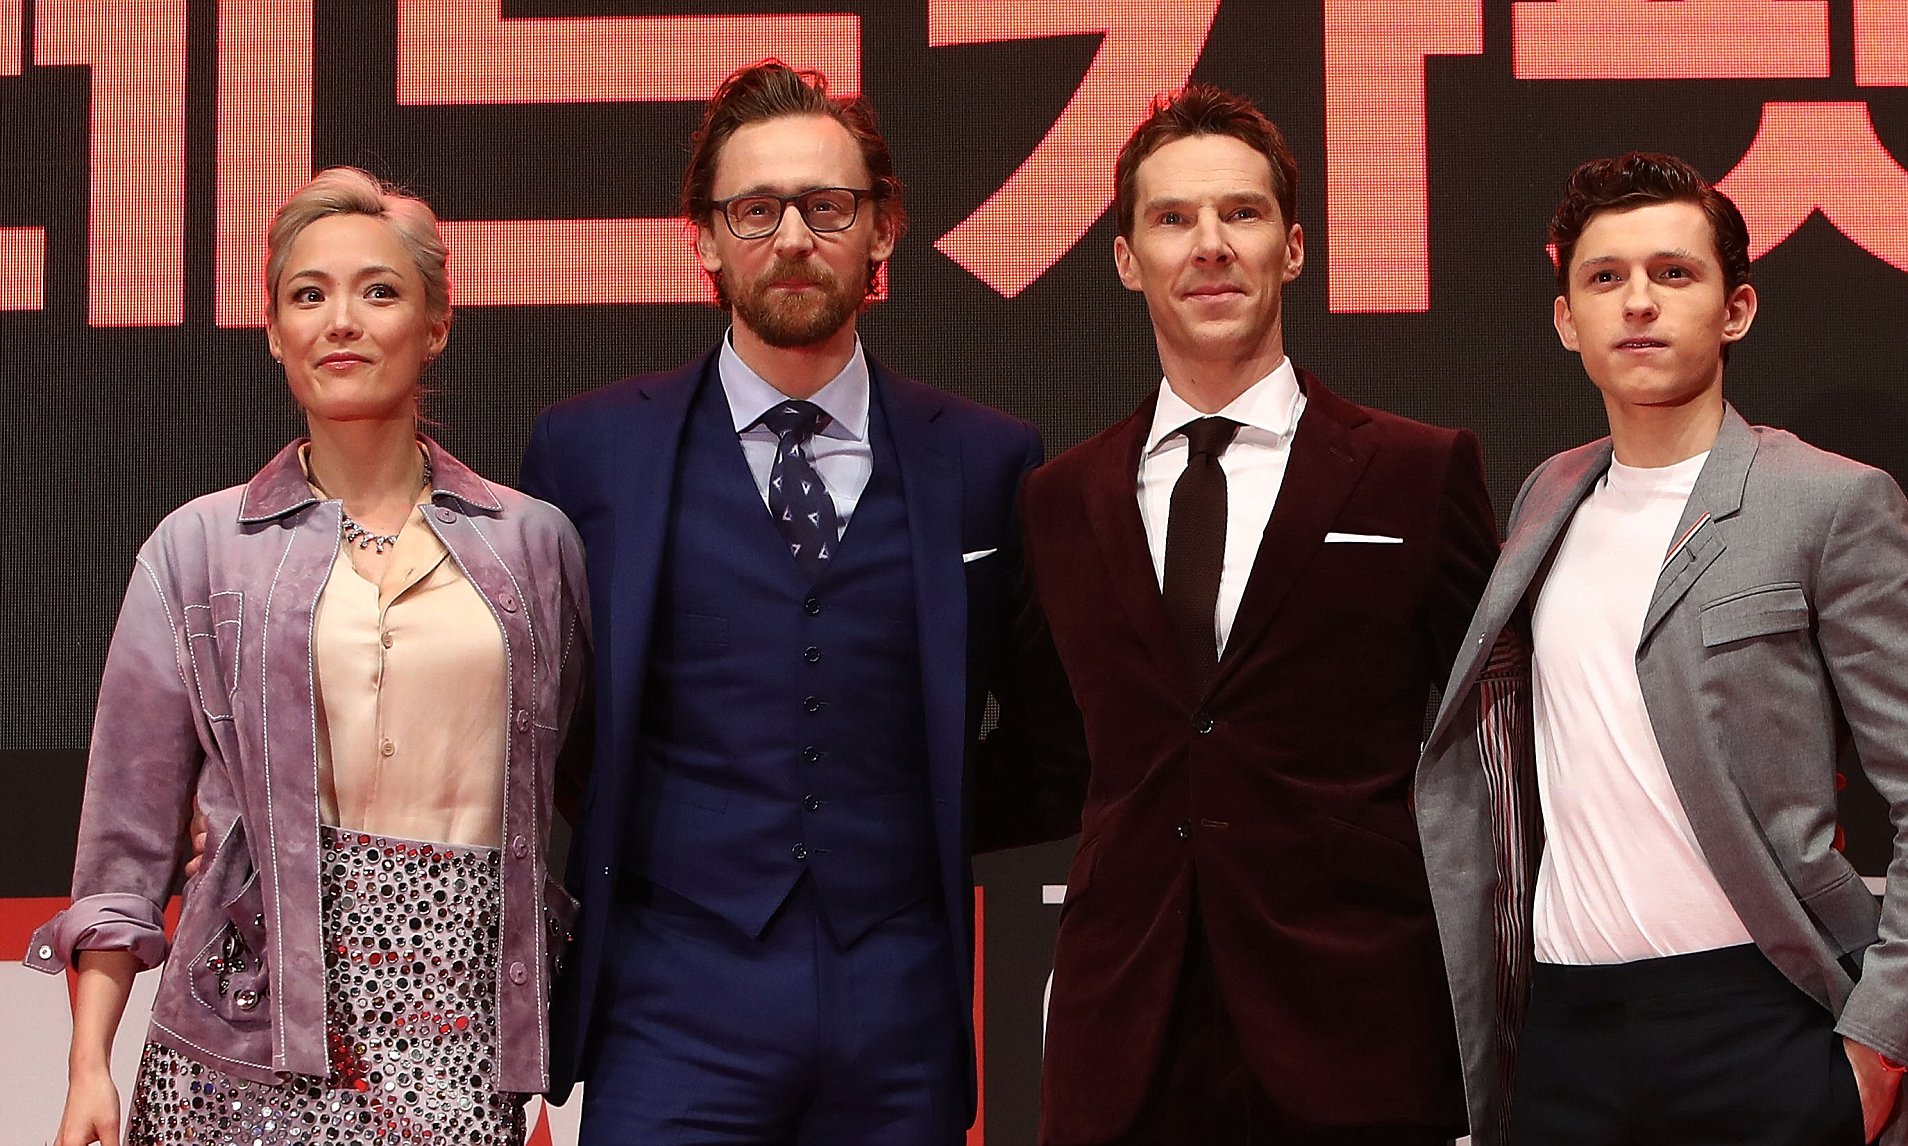 'Avengers Infinity War' Premiere In Seoul with Holland, Cumberbatch, Hiddleston, and Klementieff